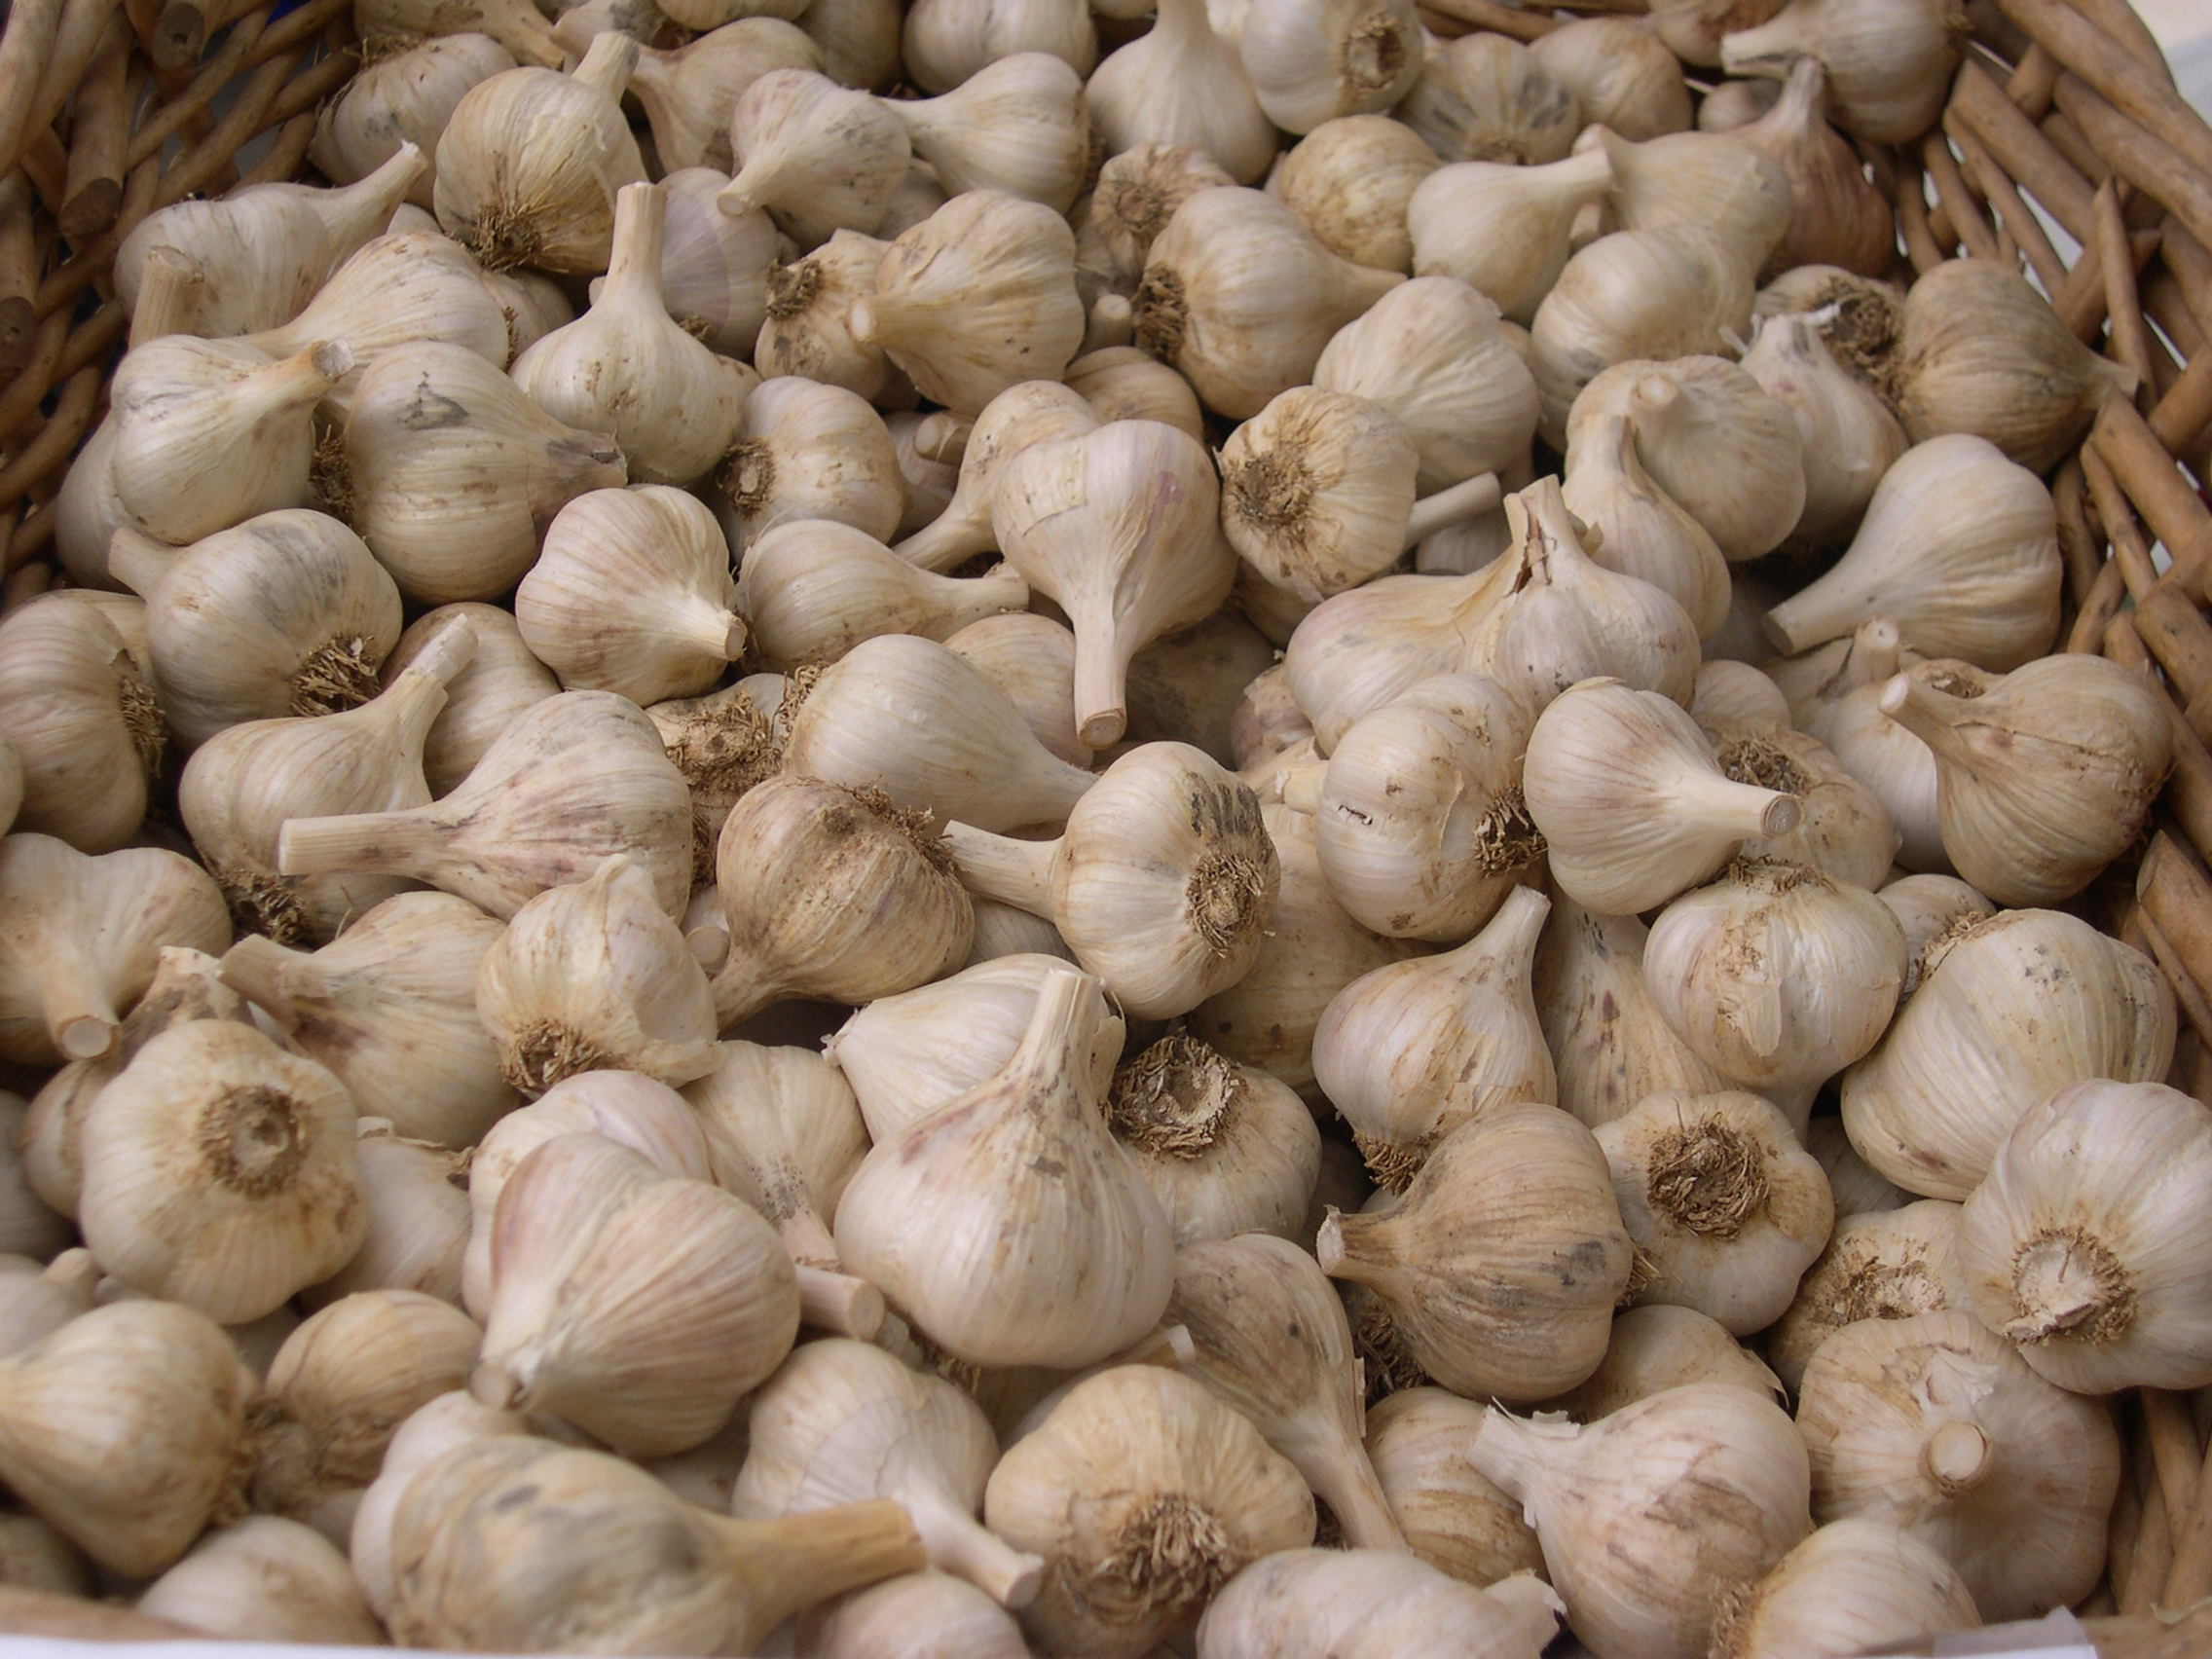 piles of garlic